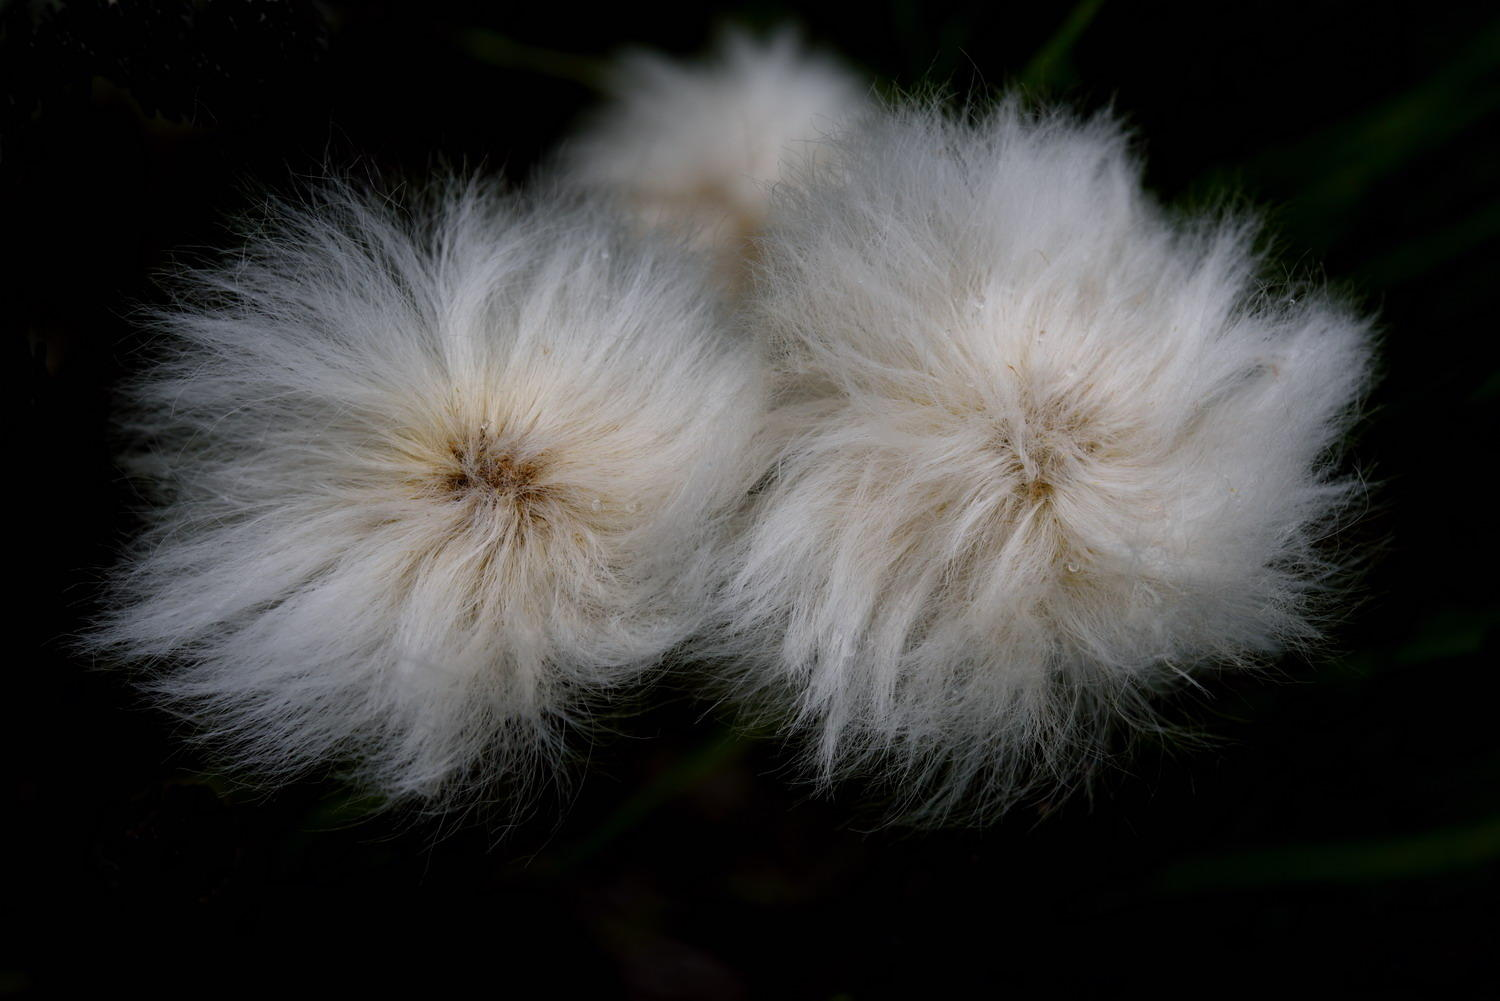 DSC_5456_1A2 - Cotton Grass